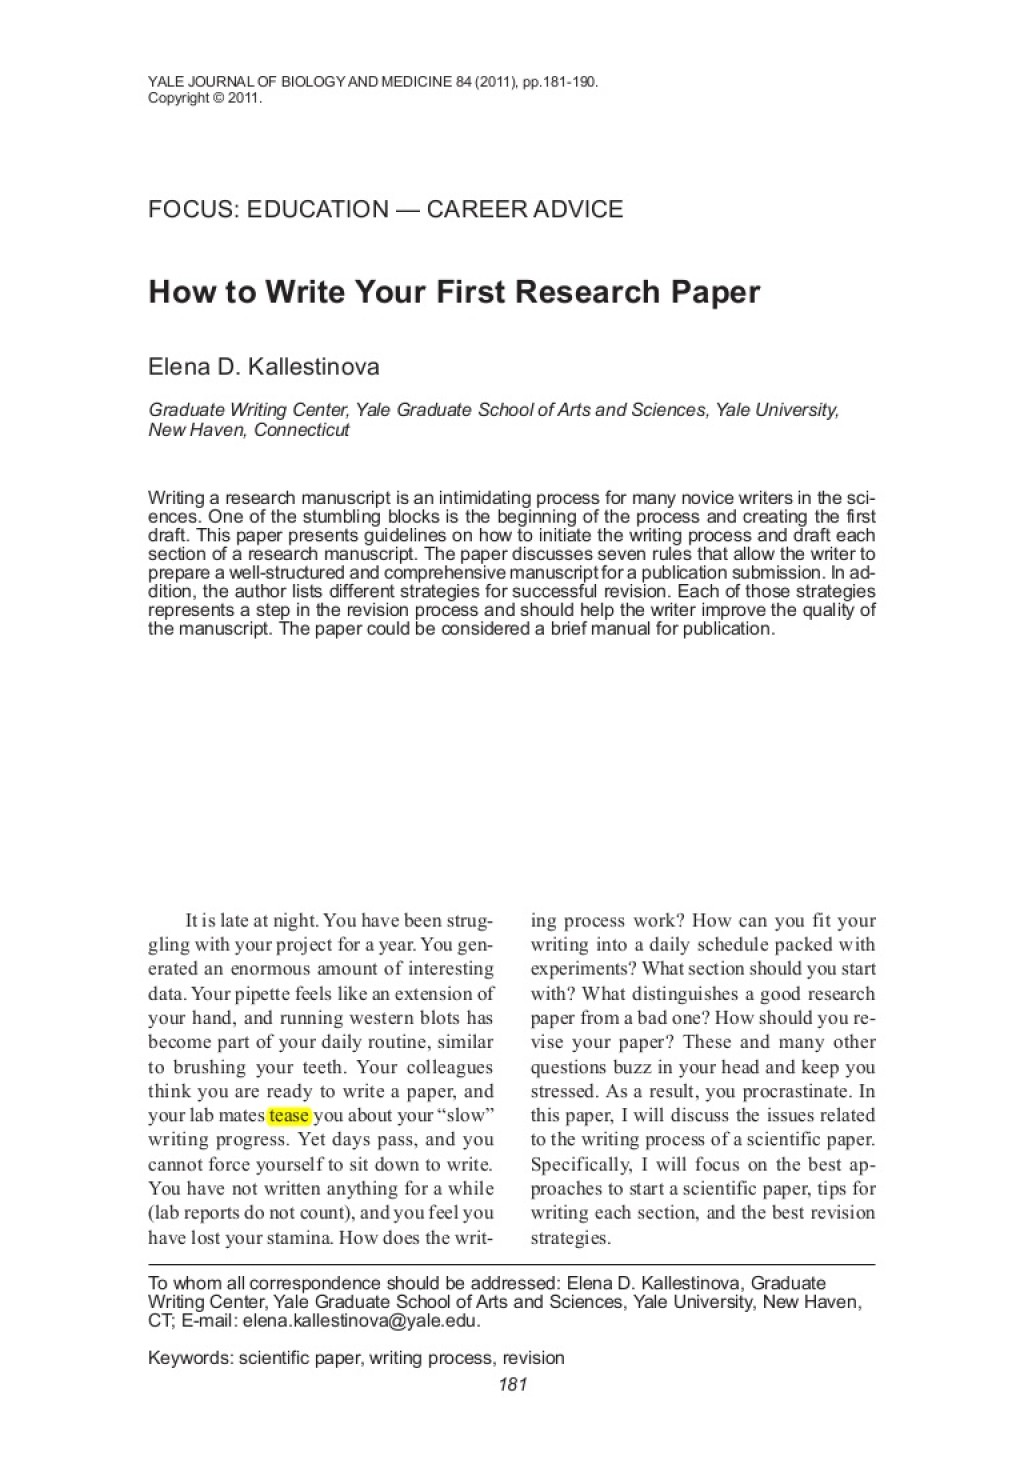 024 Research Paper Write Papers Howtowriteyourfirstresearchpaper Lva1 App6891 Thumbnail Frightening How To A History Introduction Can Someone My For Me Online Large